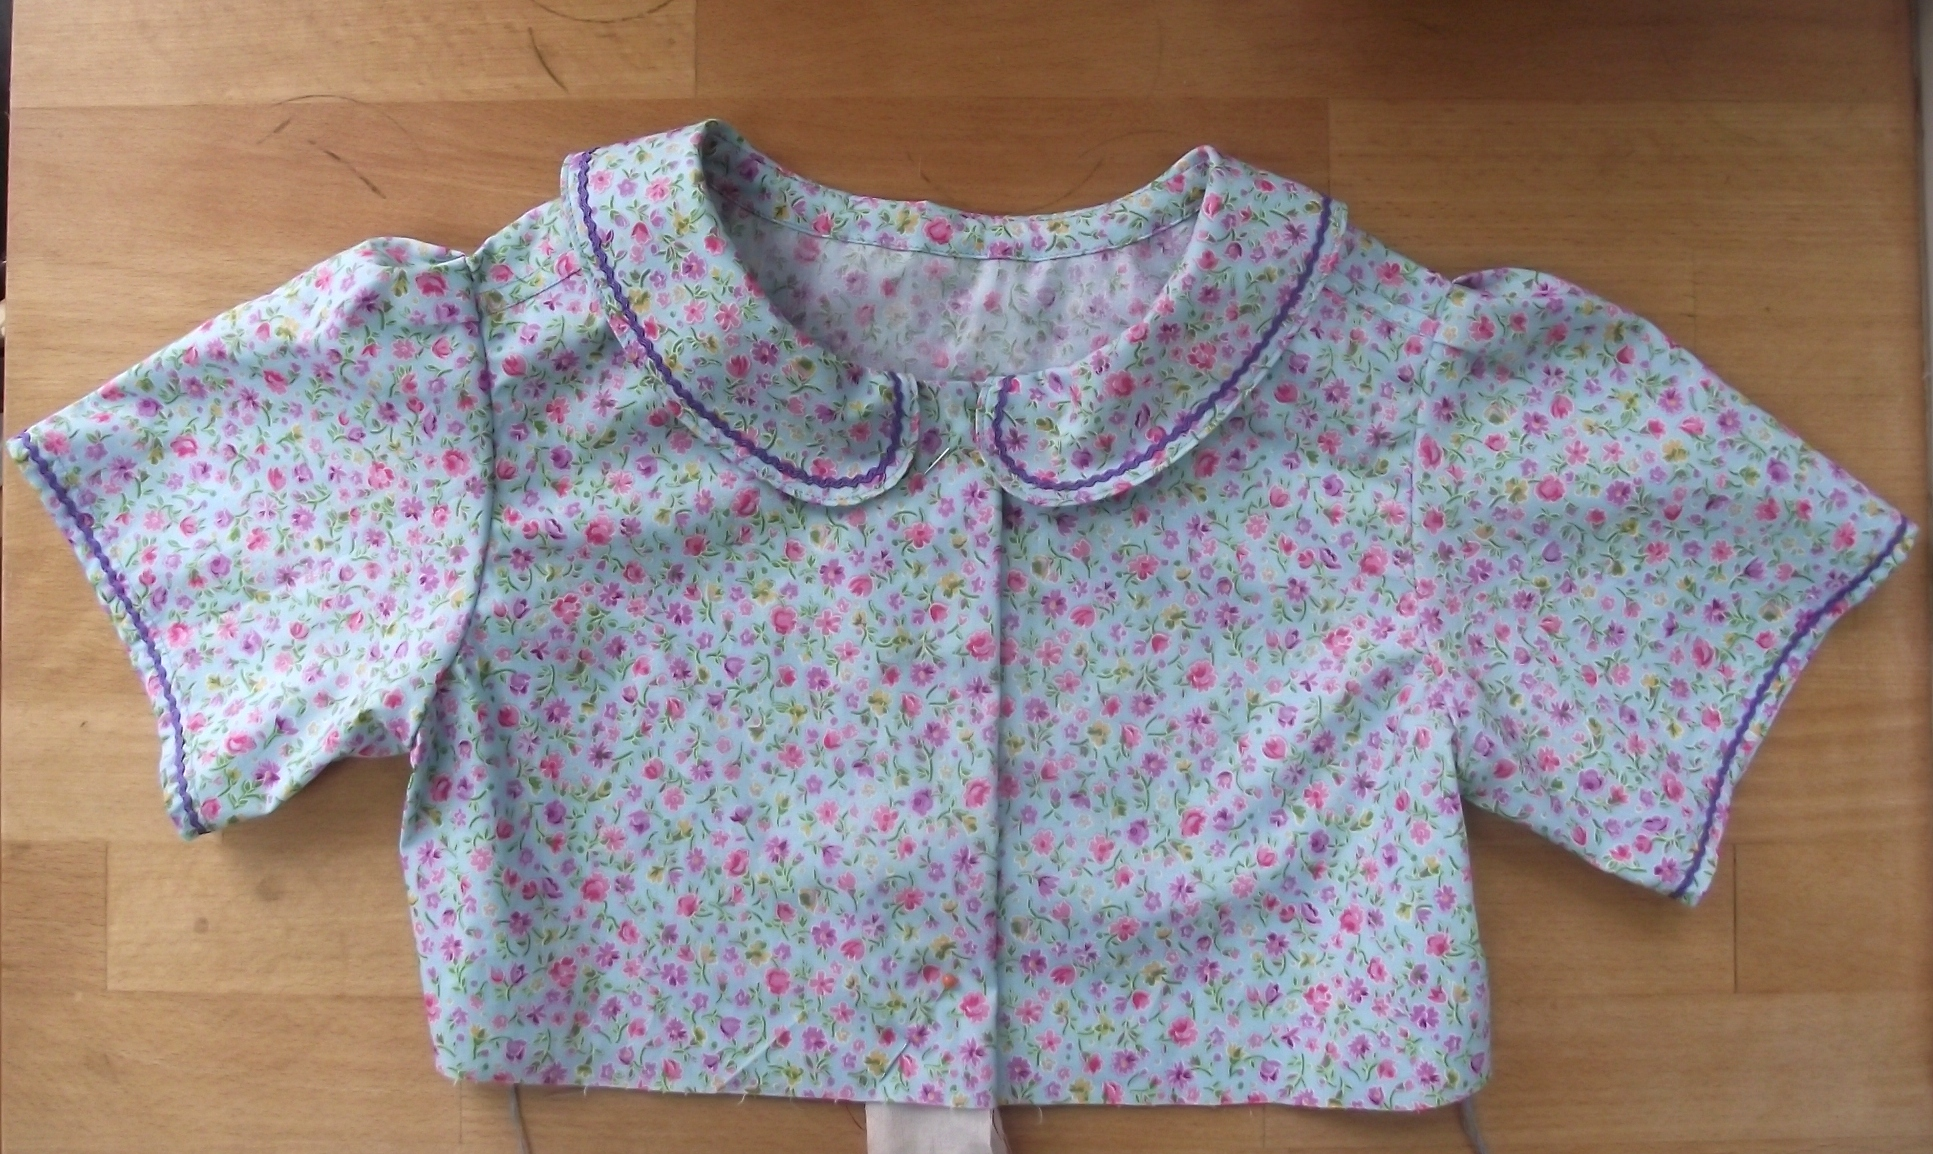 Making a child's dress - bodice